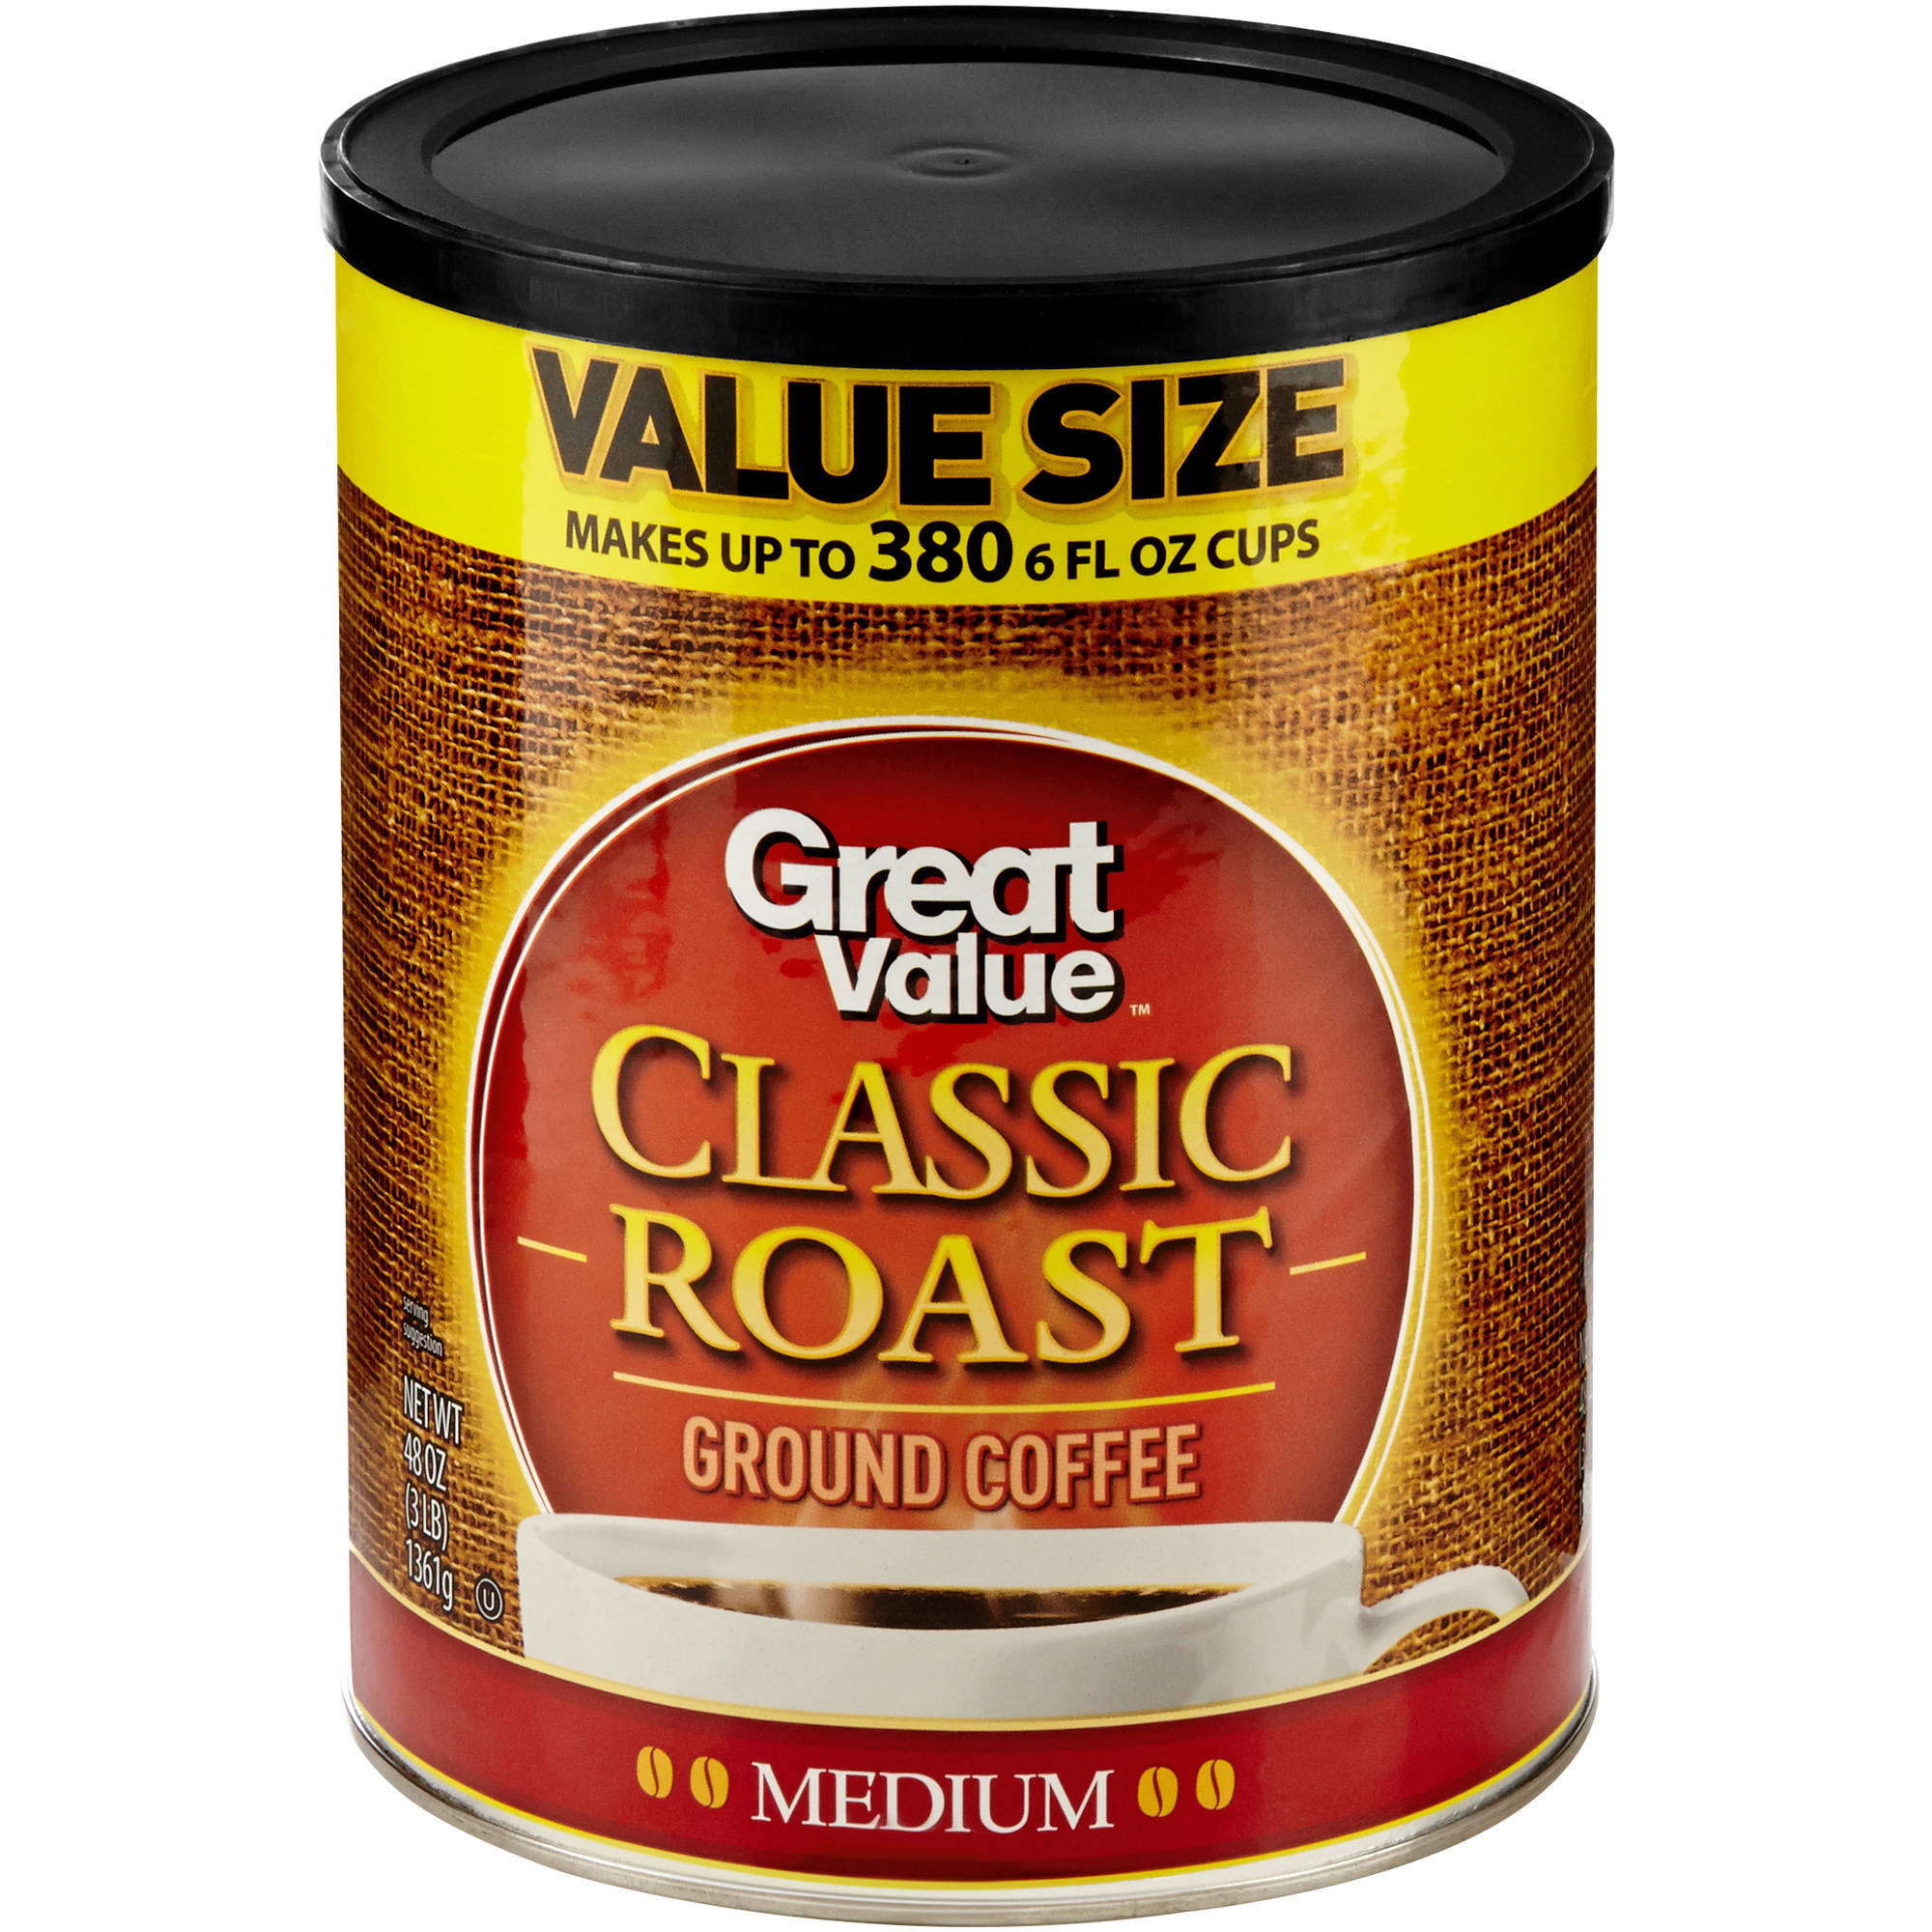 Great Value Classic Roast Medium Ground Coffee, 48 oz